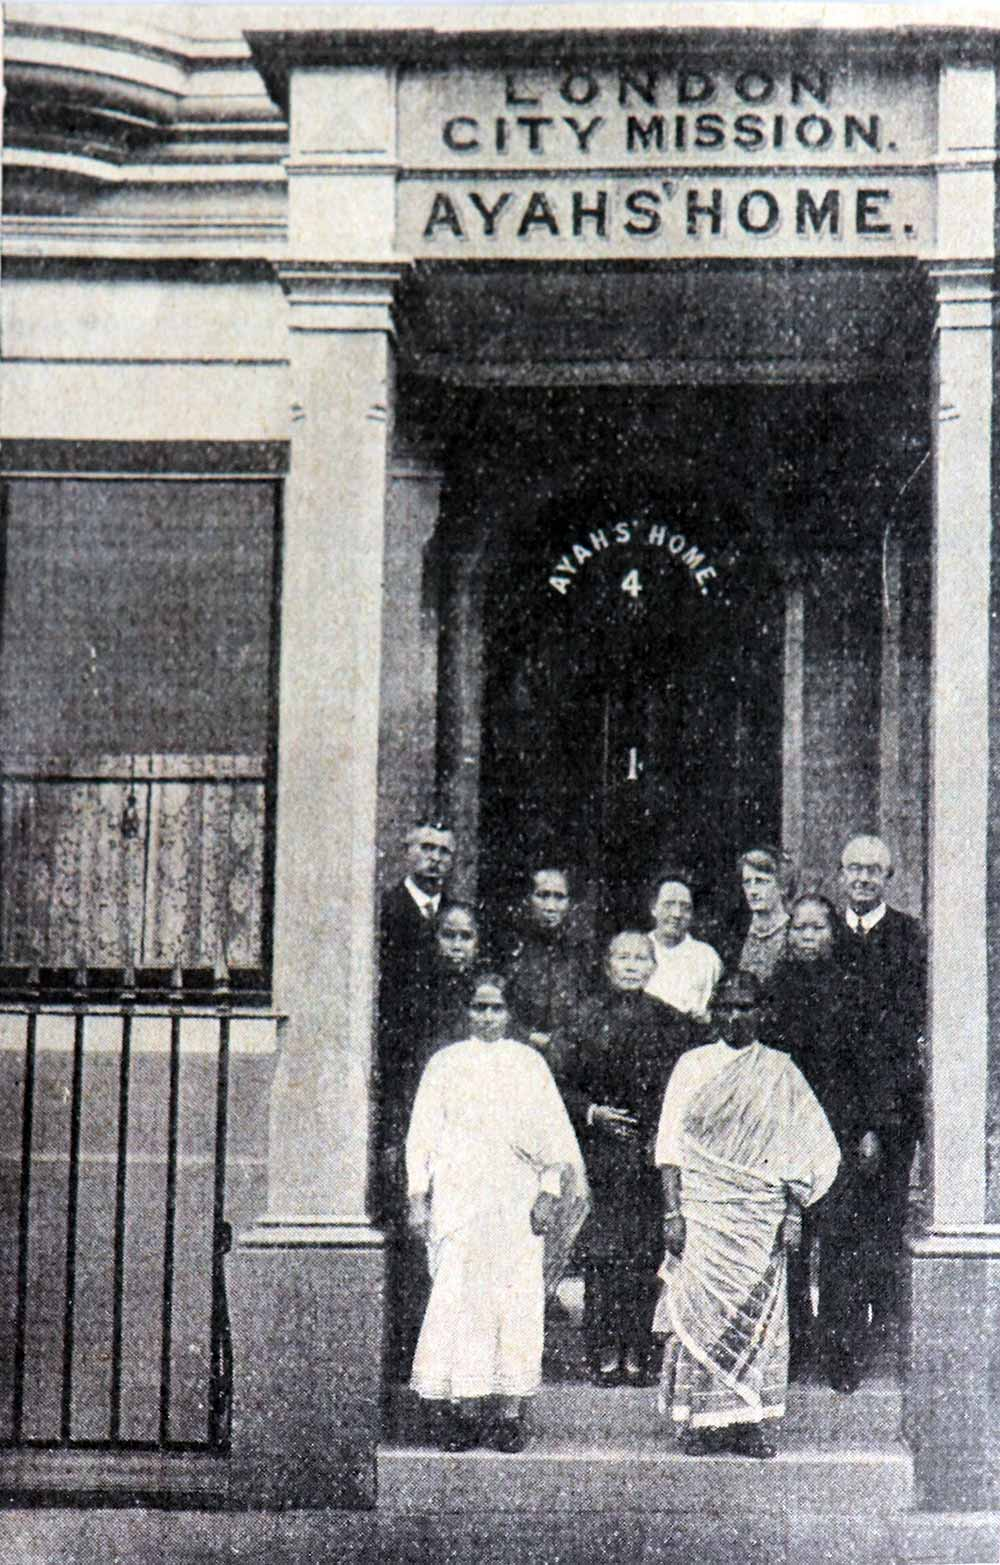 Archive image of Ayay's Home at London City Mission, 1921